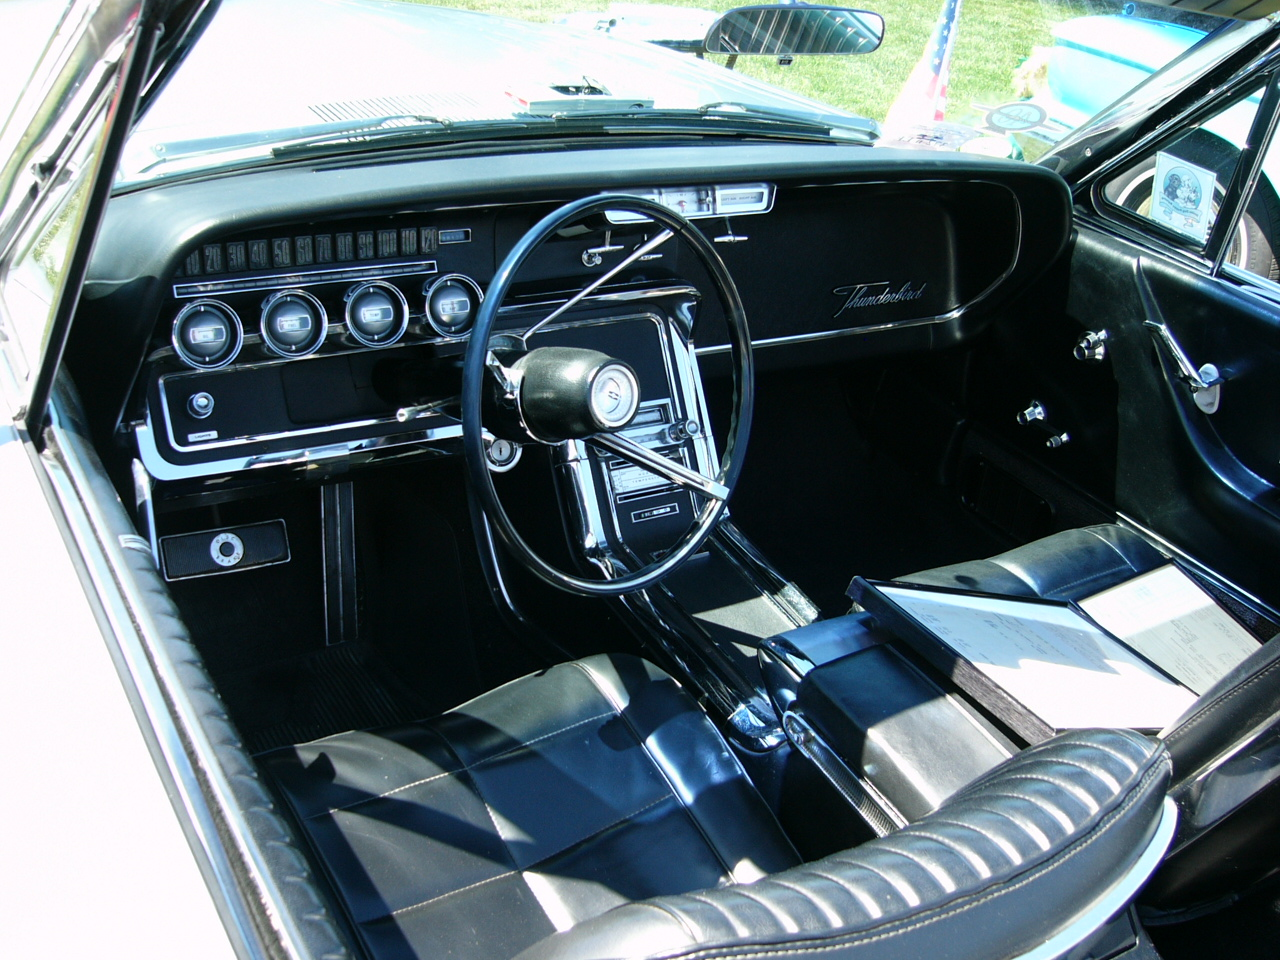 1966 T Bird Interior By Roadtripdog On Deviantart